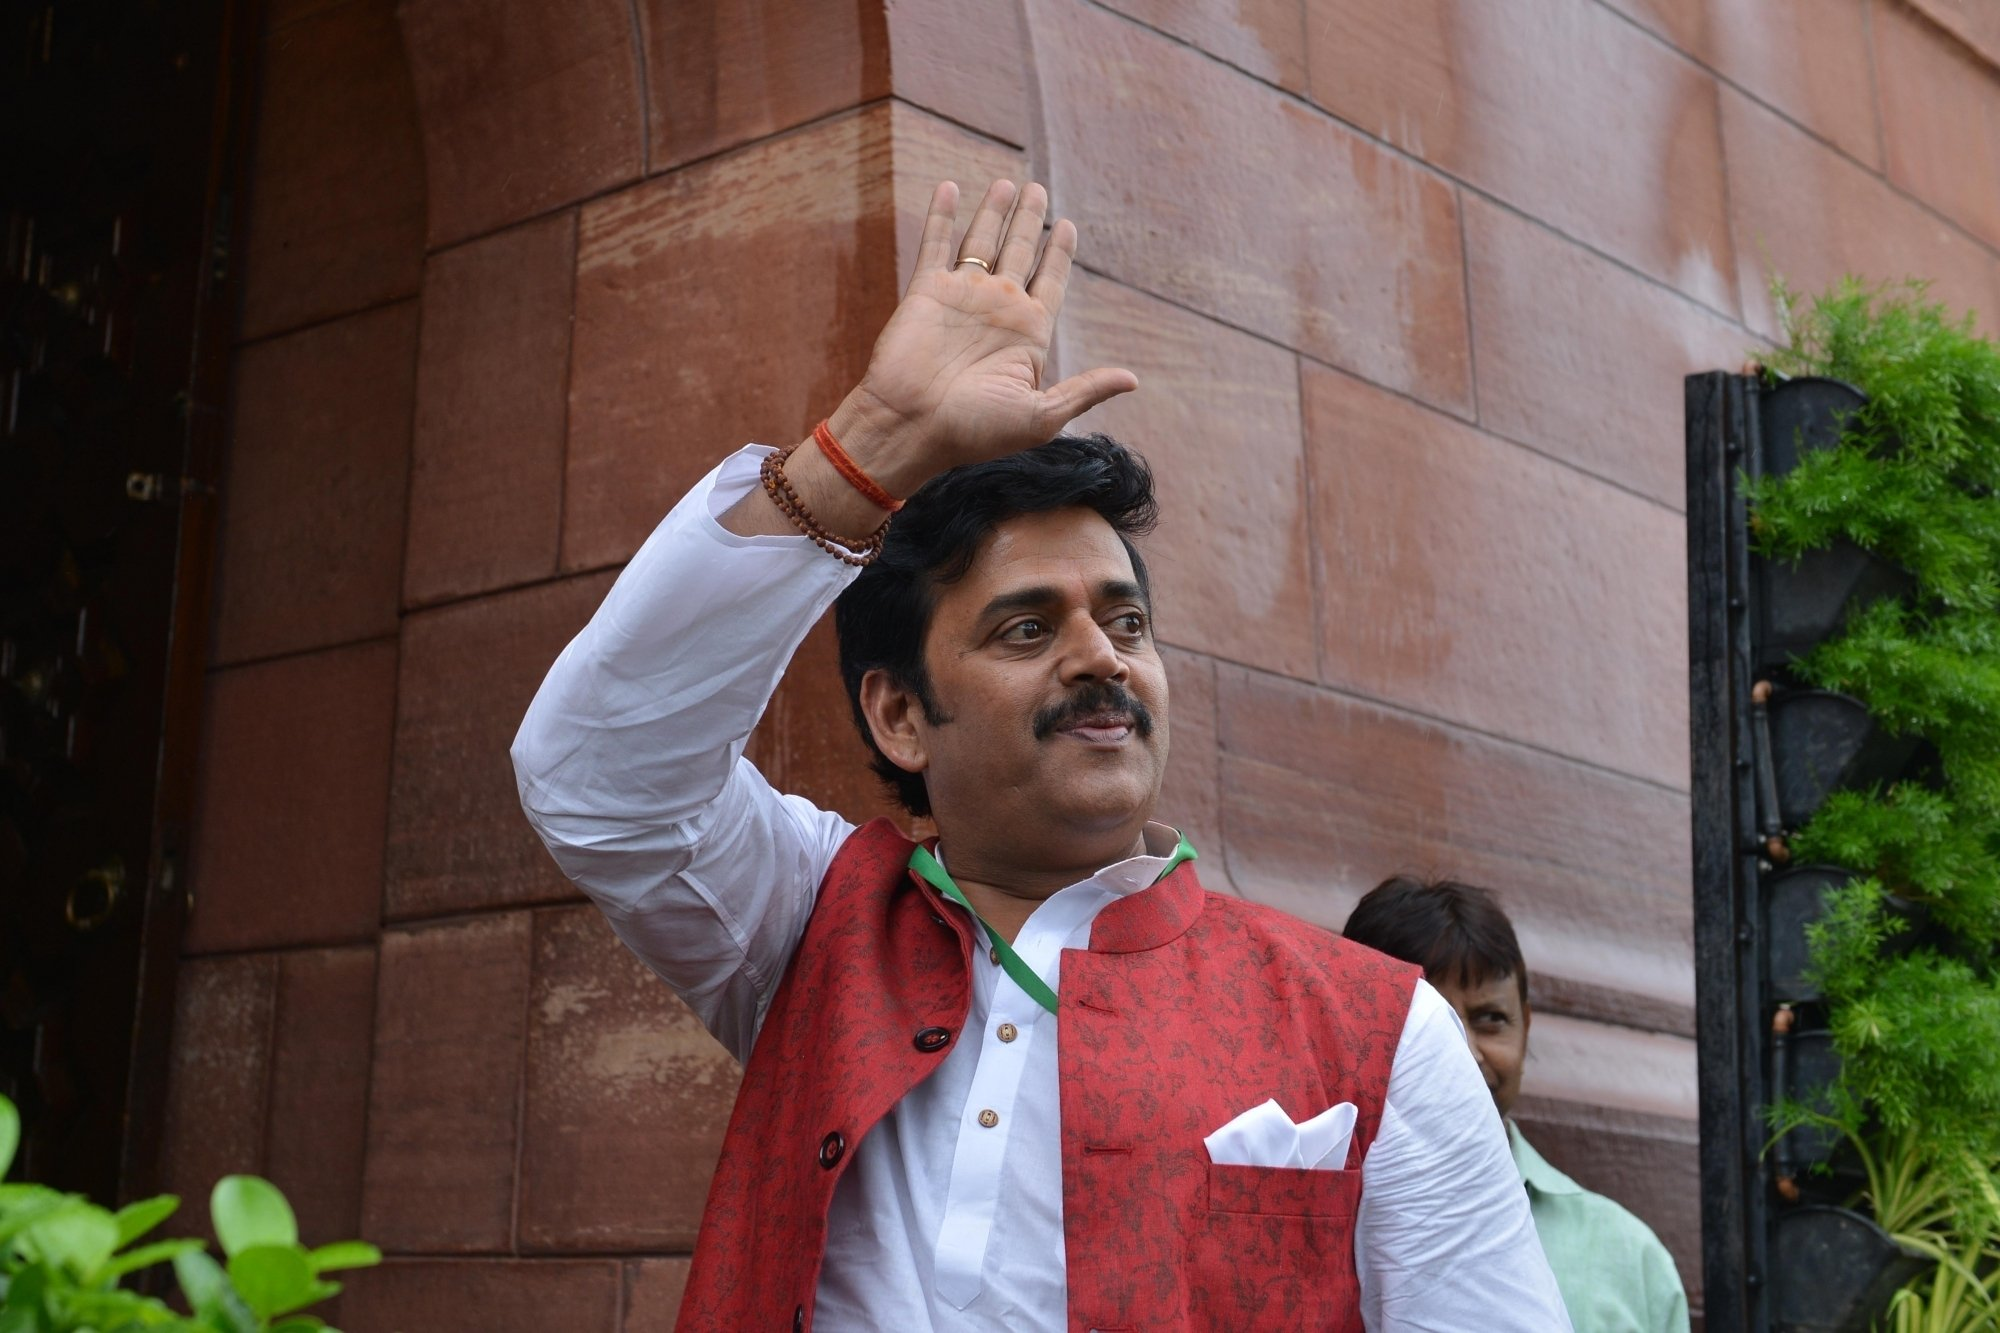 Ravi Kishan gives 40L for UP O2 plant in Gorakhpur